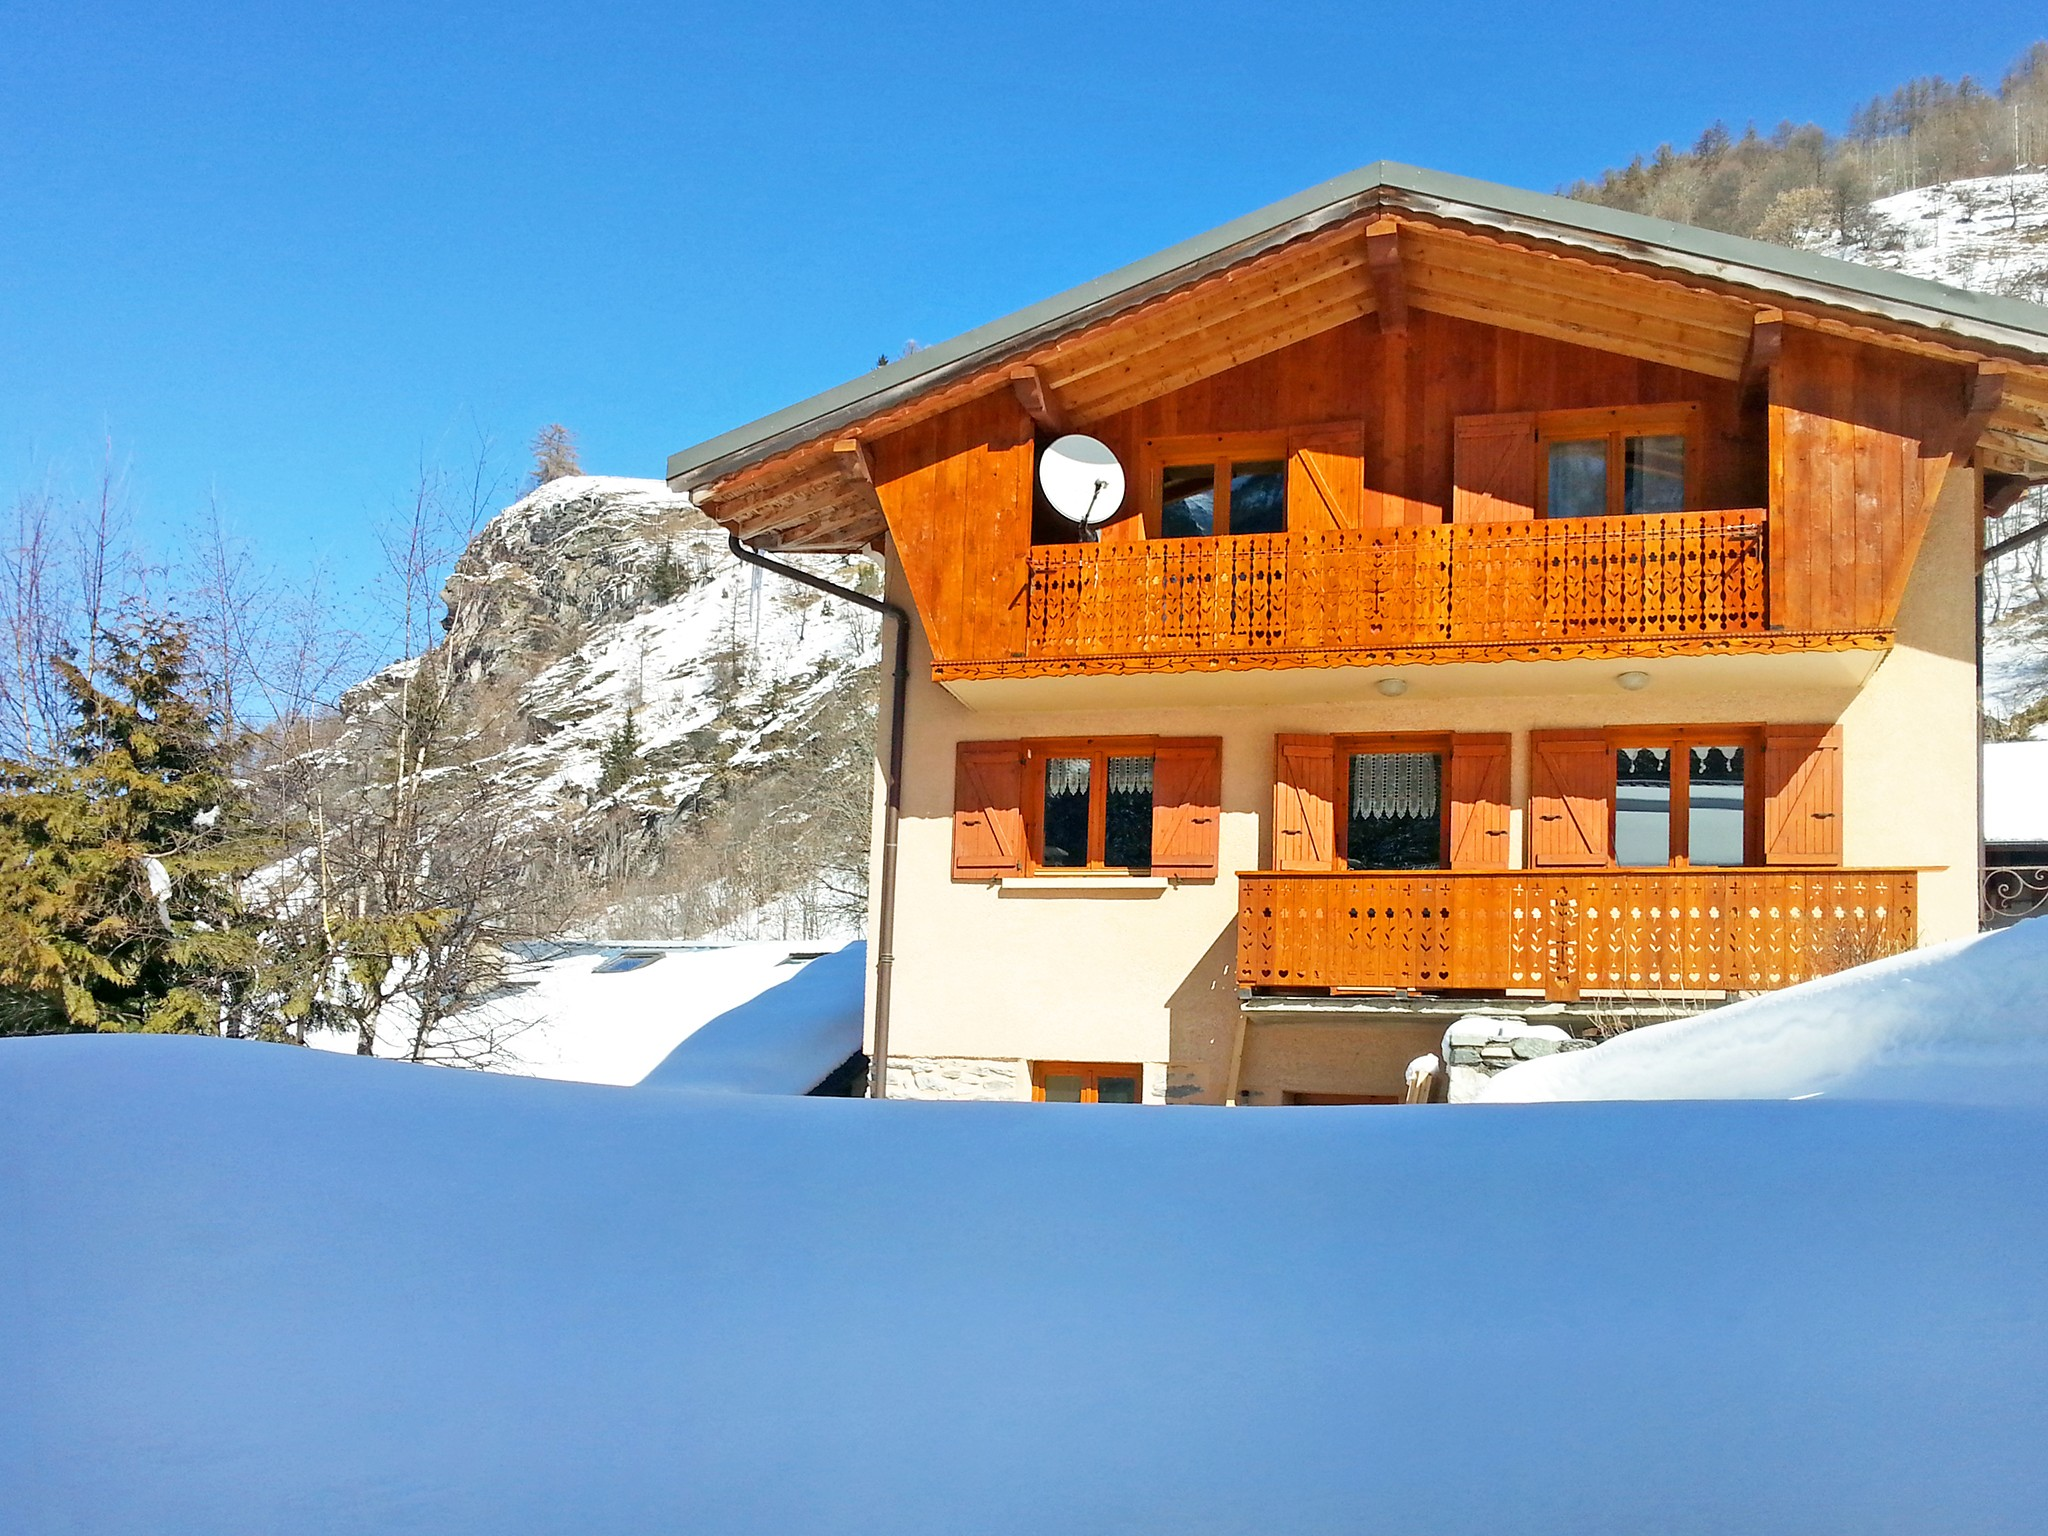 Chalet d'Alfred